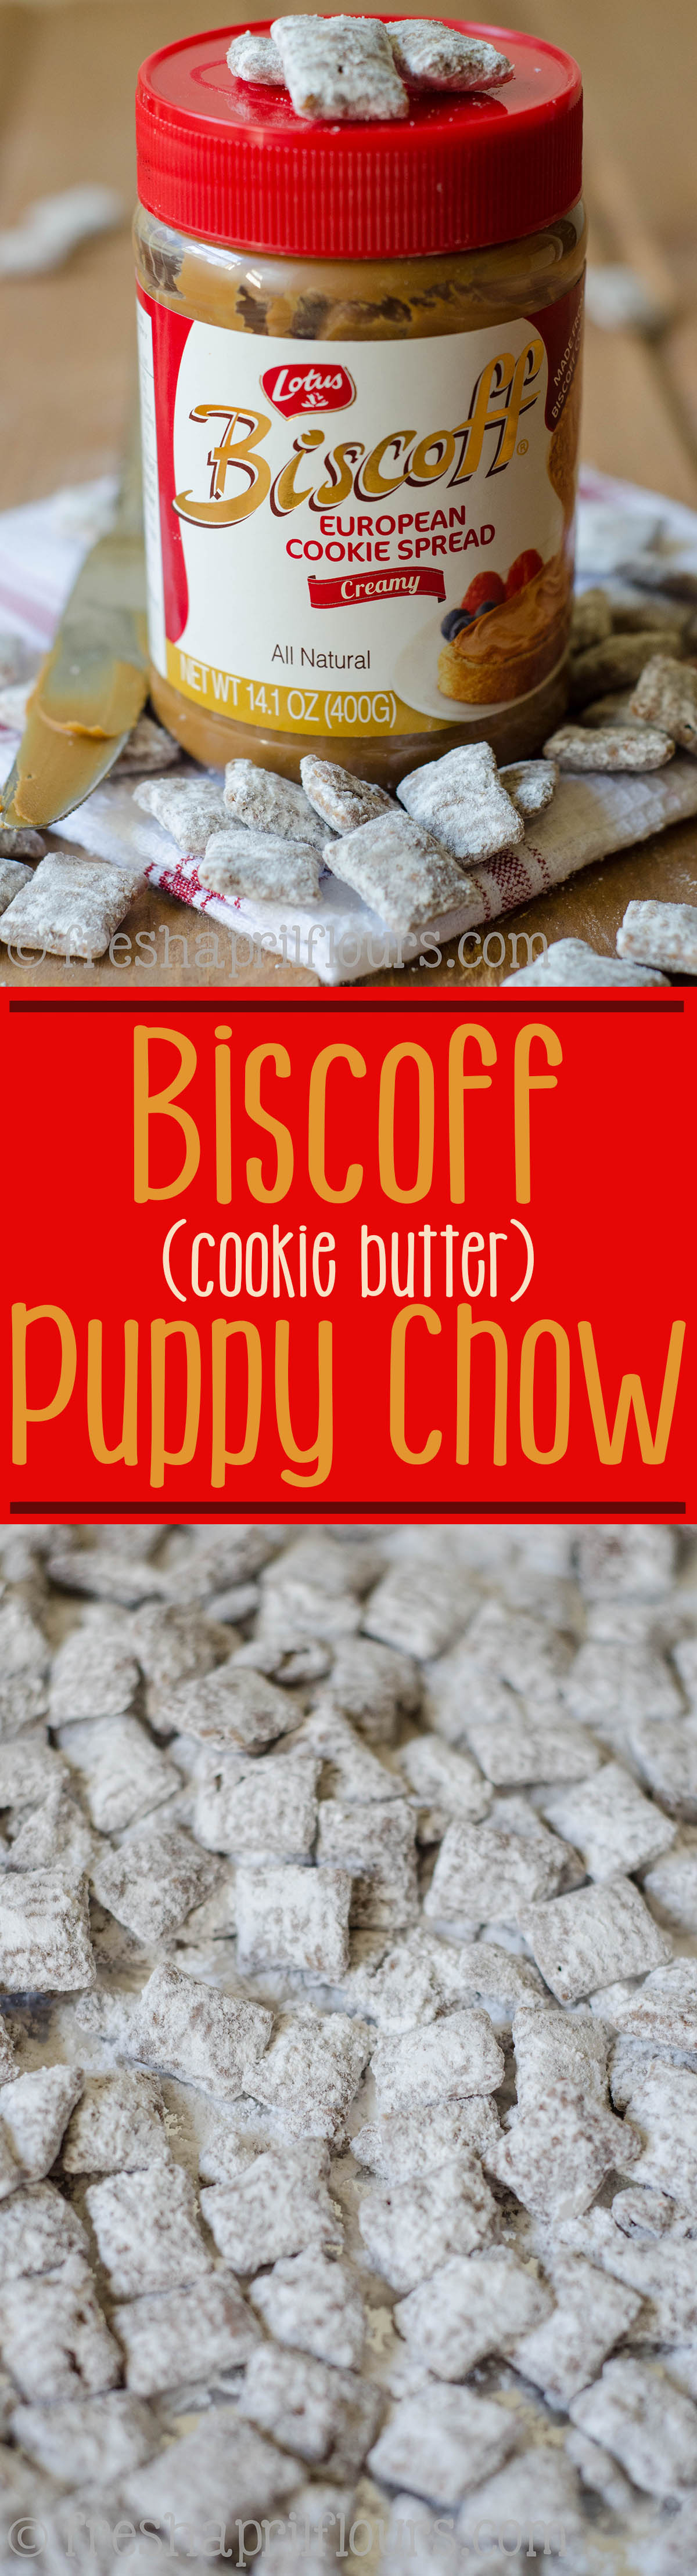 Biscoff (Cookie Butter) Puppy Chow: An easy recipe for puppy chow made with Biscoff cookie spread.